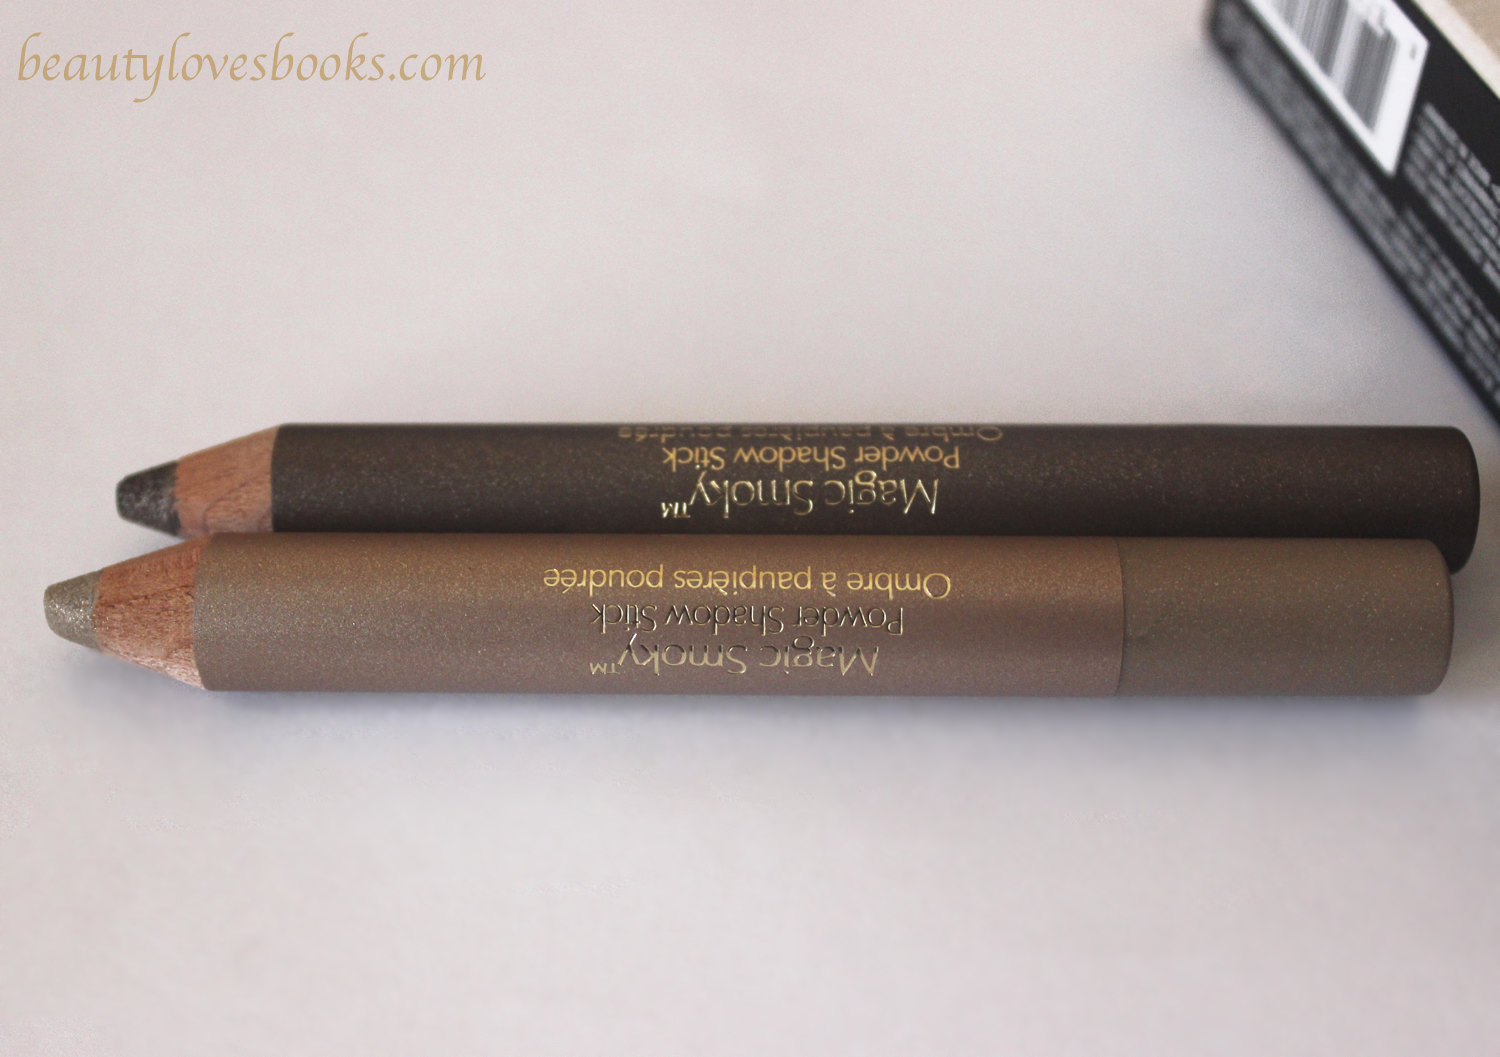 Estée Lauder Magic Smoky Powder Shadow sticks in 04 Slow Burn/ 06 Scorched gold